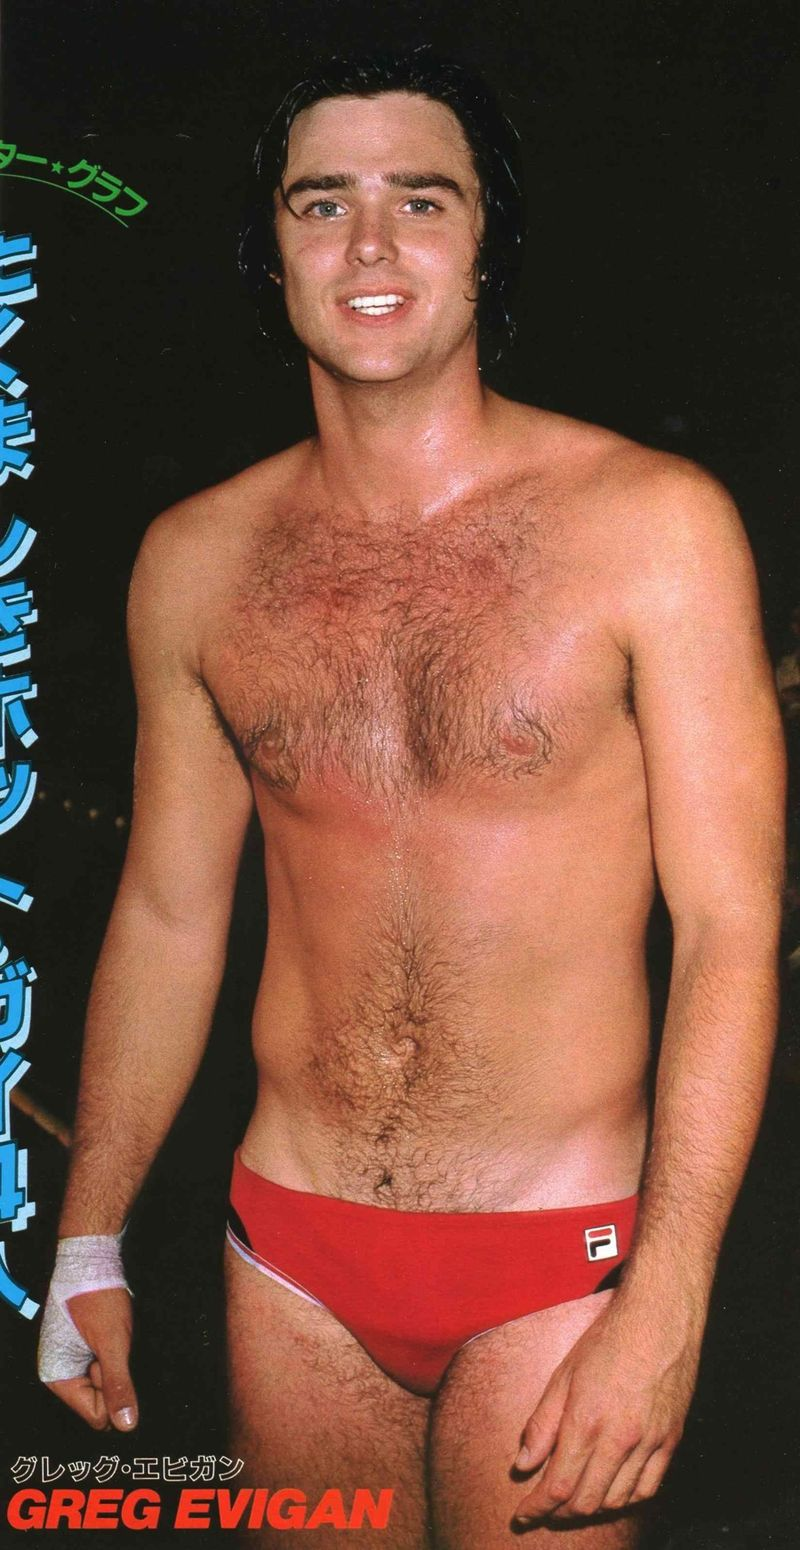 Greg-Evigan-hot